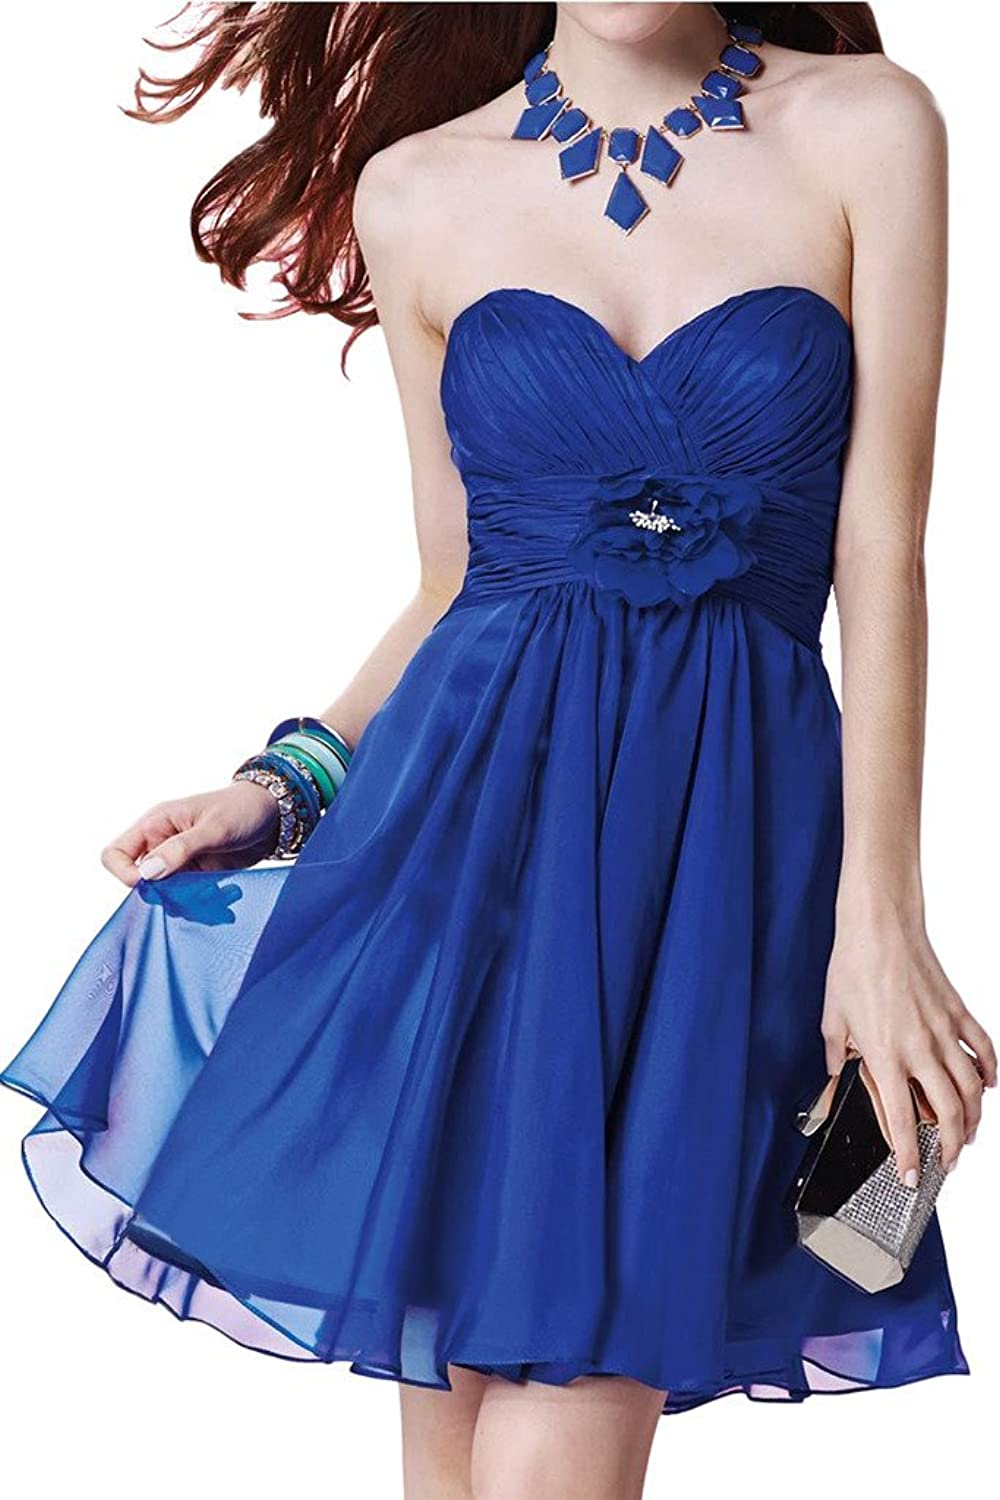 Avril Dress Sweetheart Ruched Flower Belt ALine Cocktail Homecooming Prom Dress